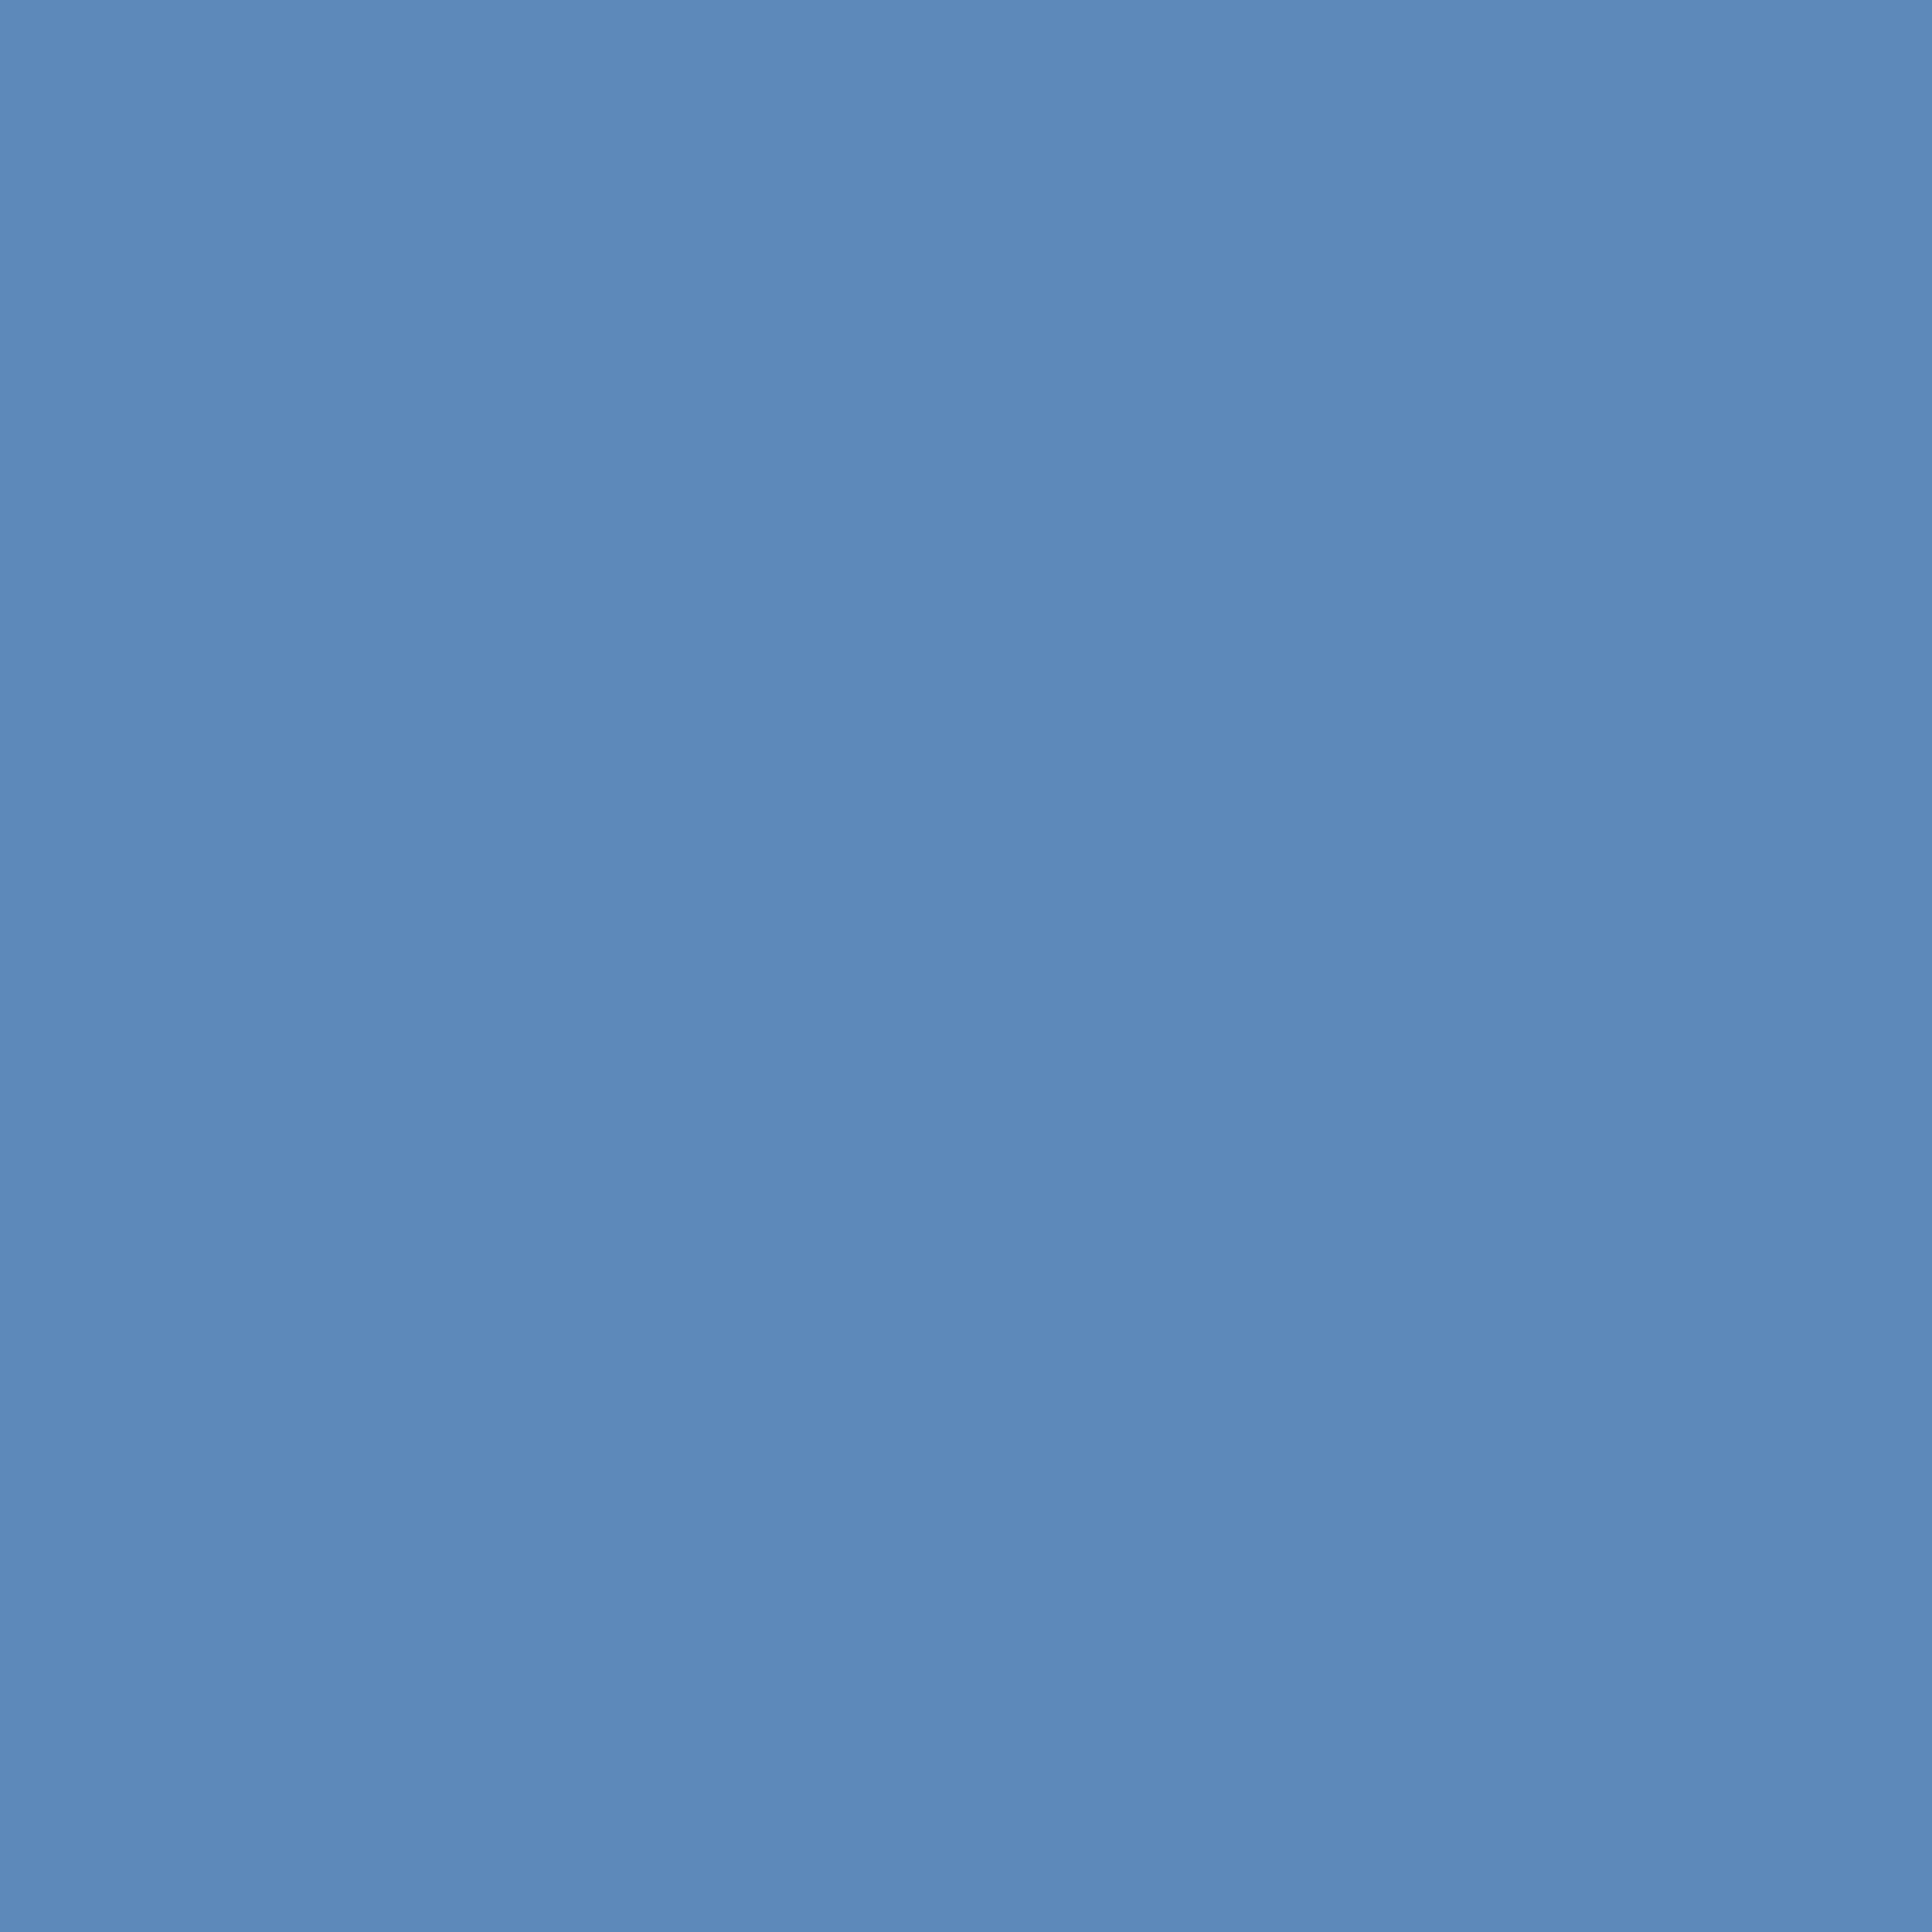 2048x2048 Silver Lake Blue Solid Color Background